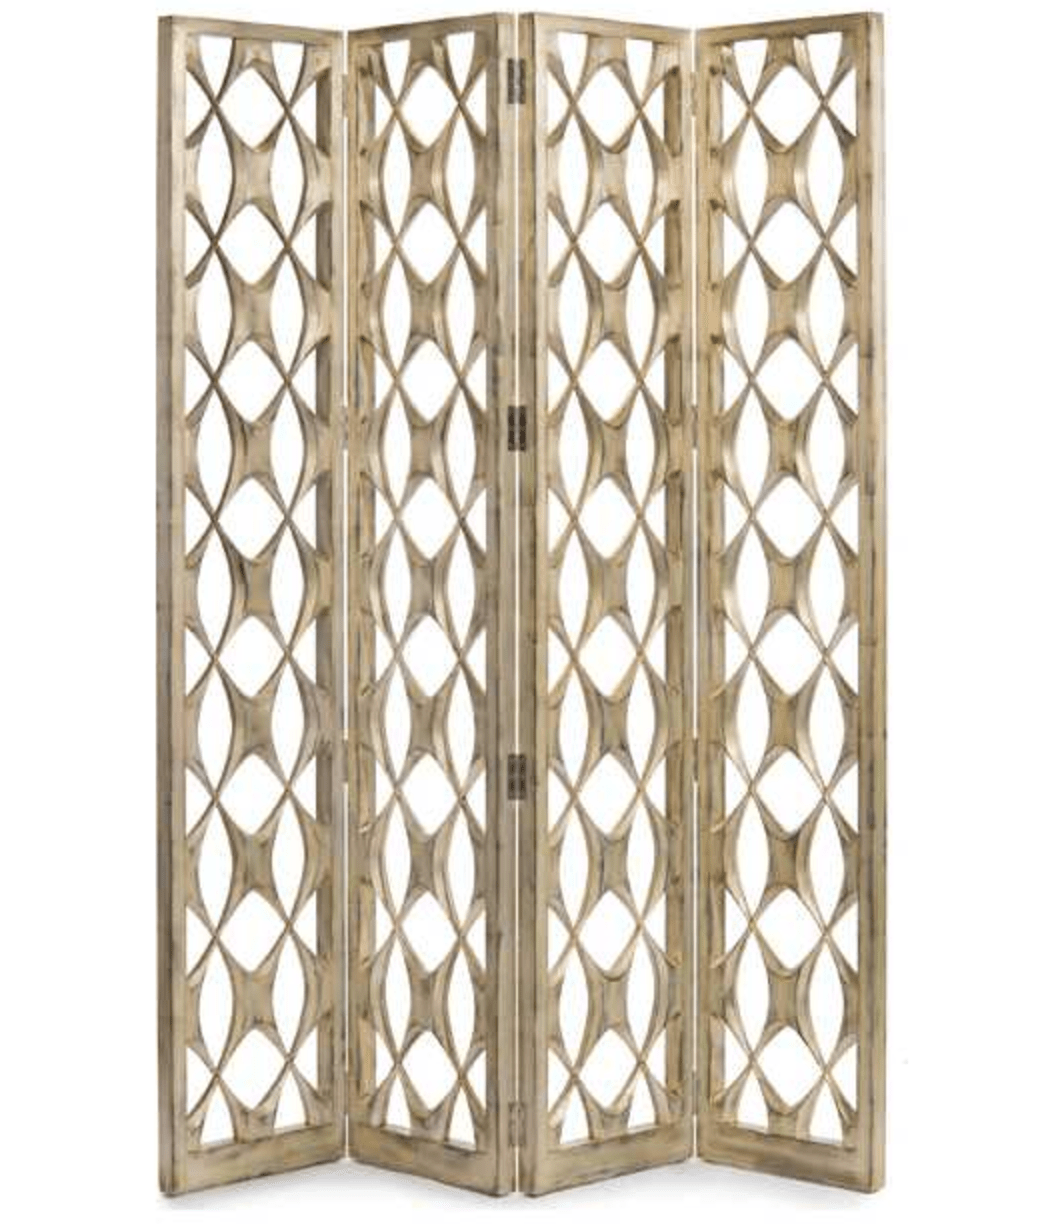 John Richard four-panel screen room divider from Luxe Decor